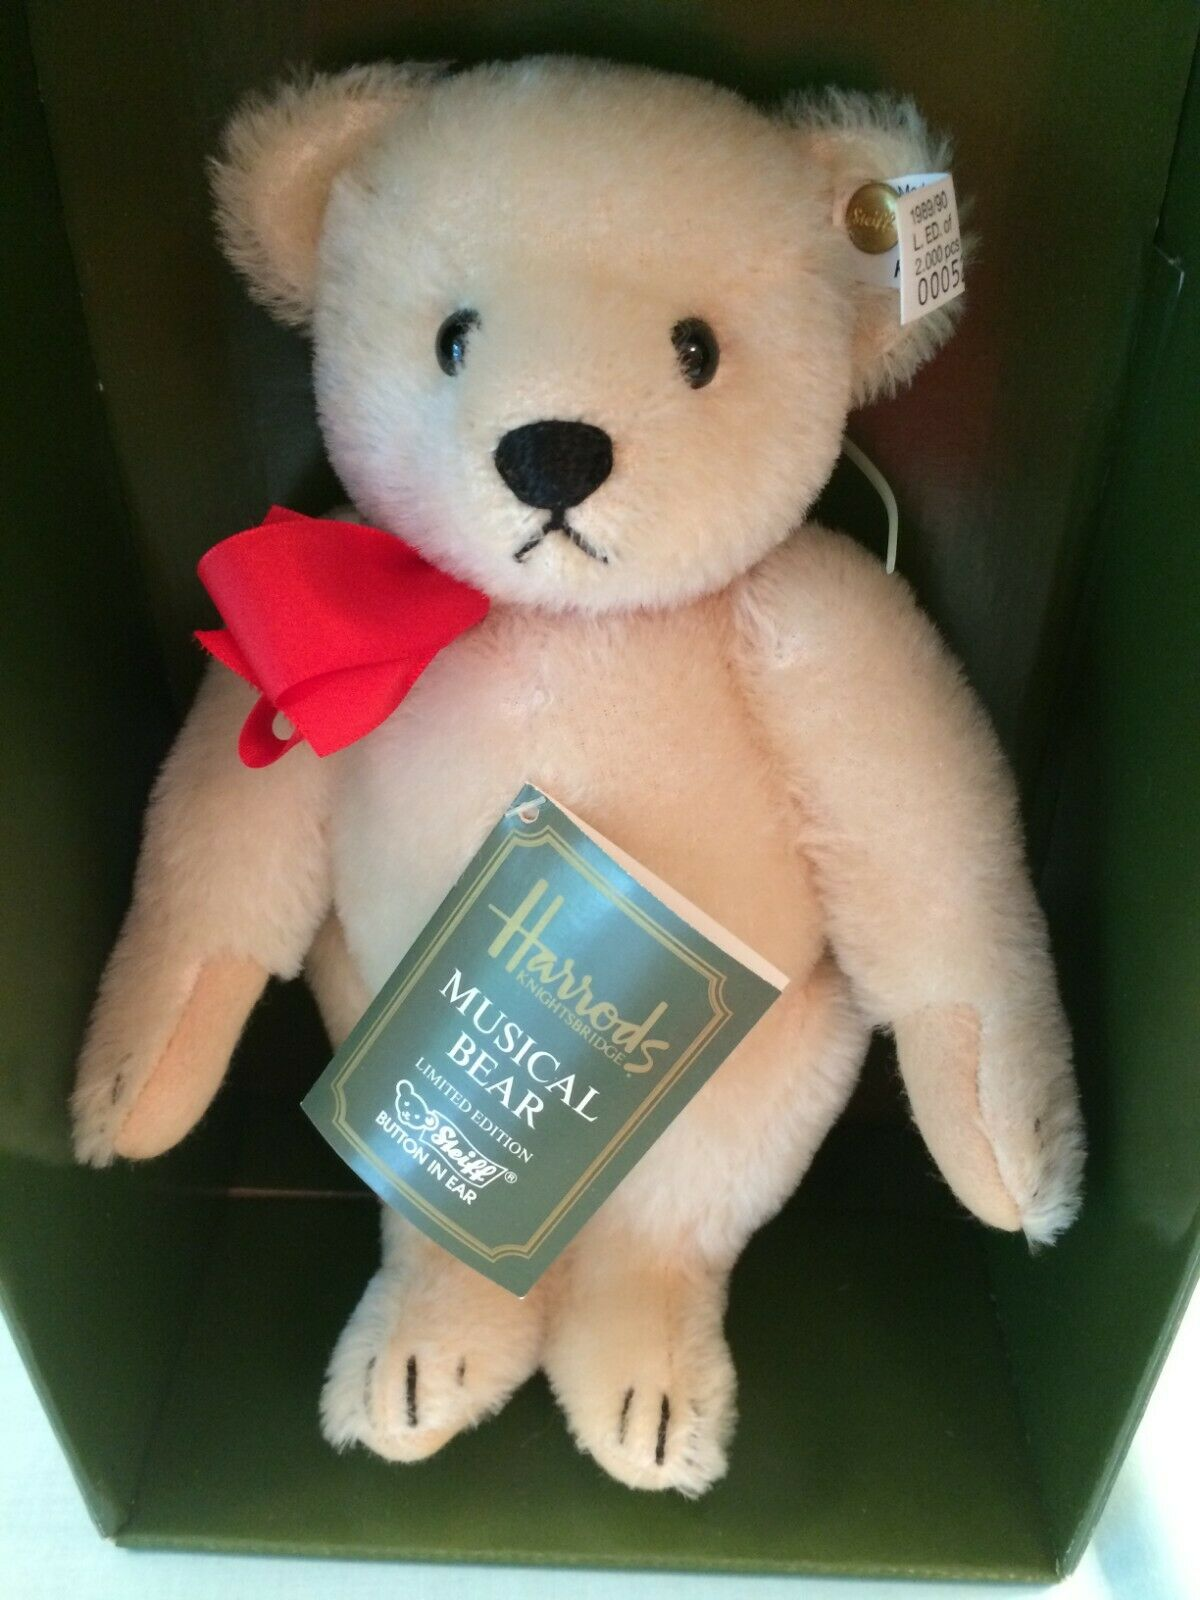 Steiff Harrods Musical Teddy Bear Weiß Tag LE 011917 0291 26 1989 90 NEW IN BOX